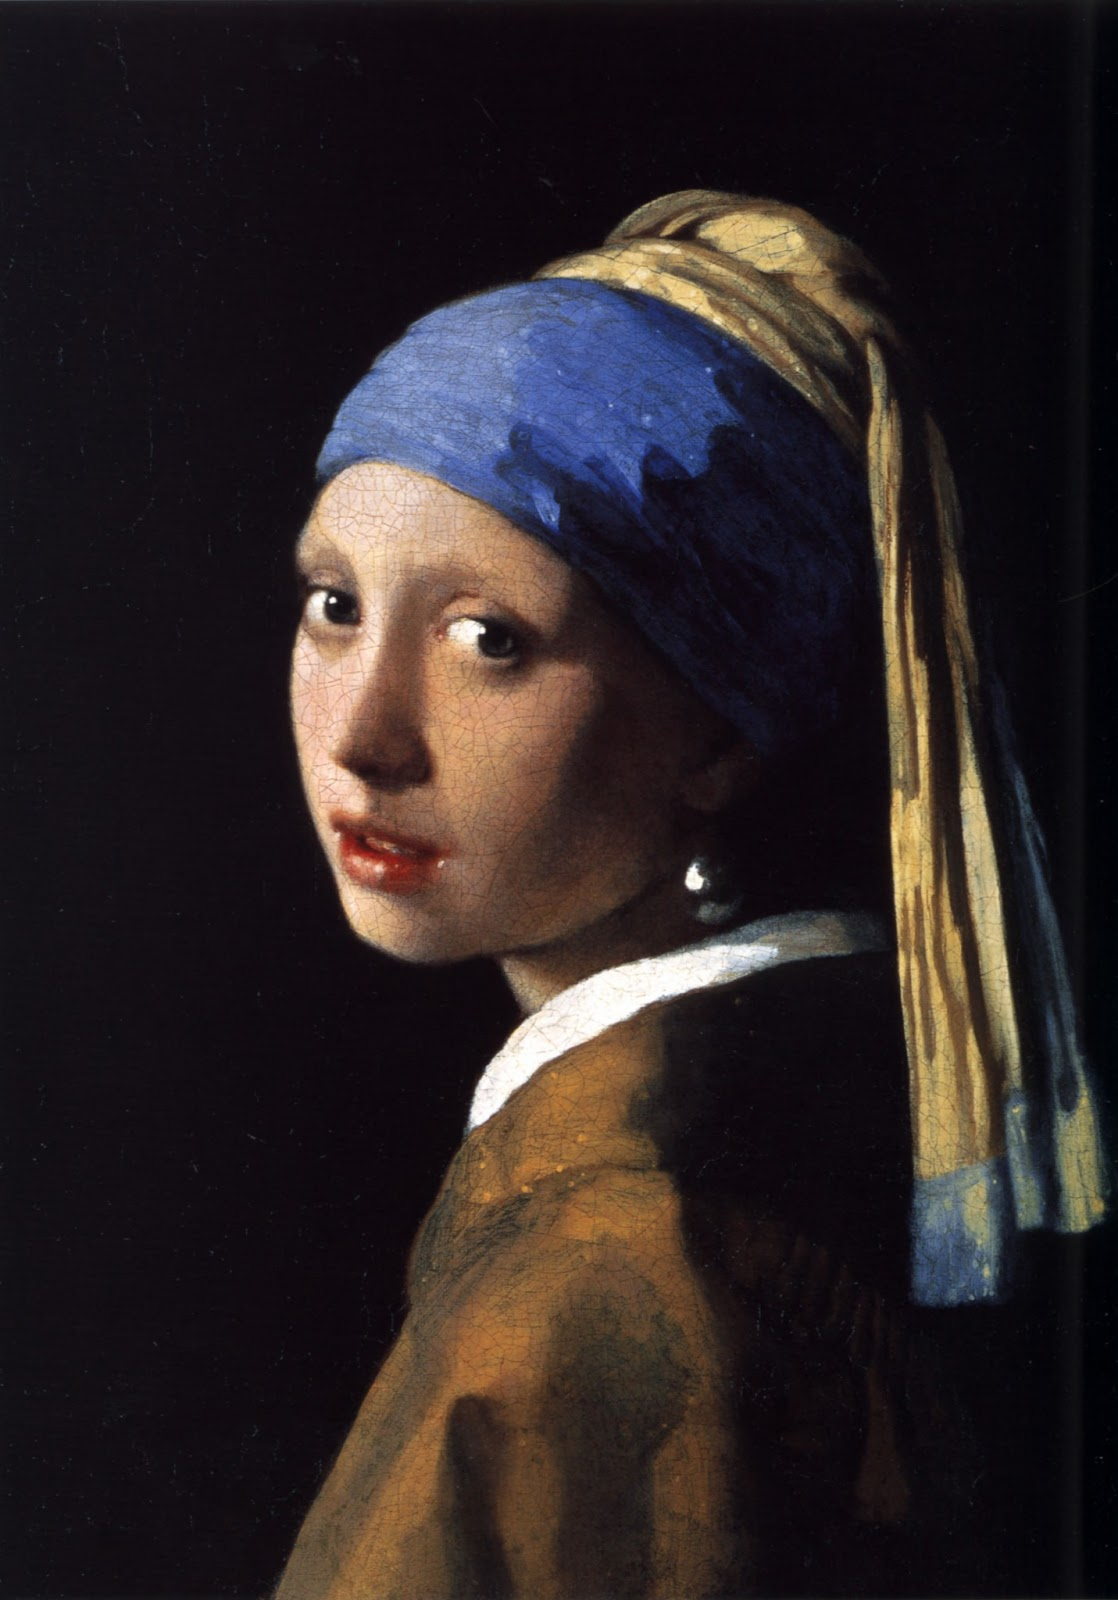 Bagging Area: The Girl With A Pearl Earring